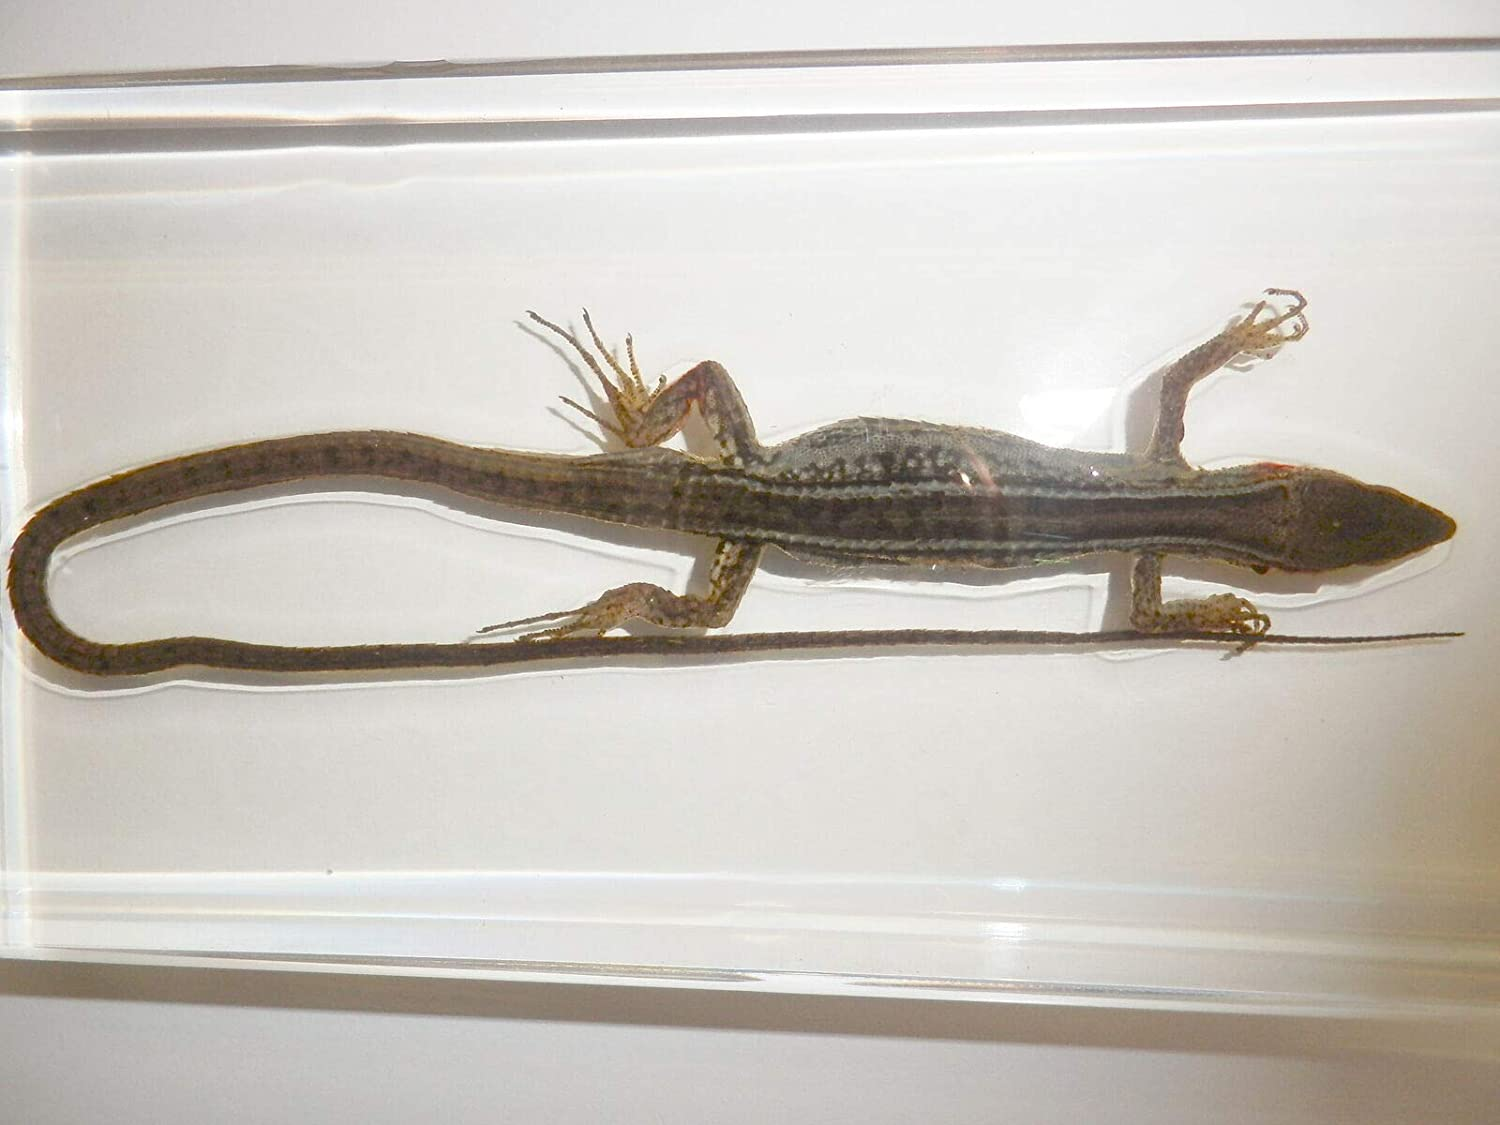 Siam Insects Asian Grass Lizard Takydromus sexlineatus Clear Block Education Animal Specimen